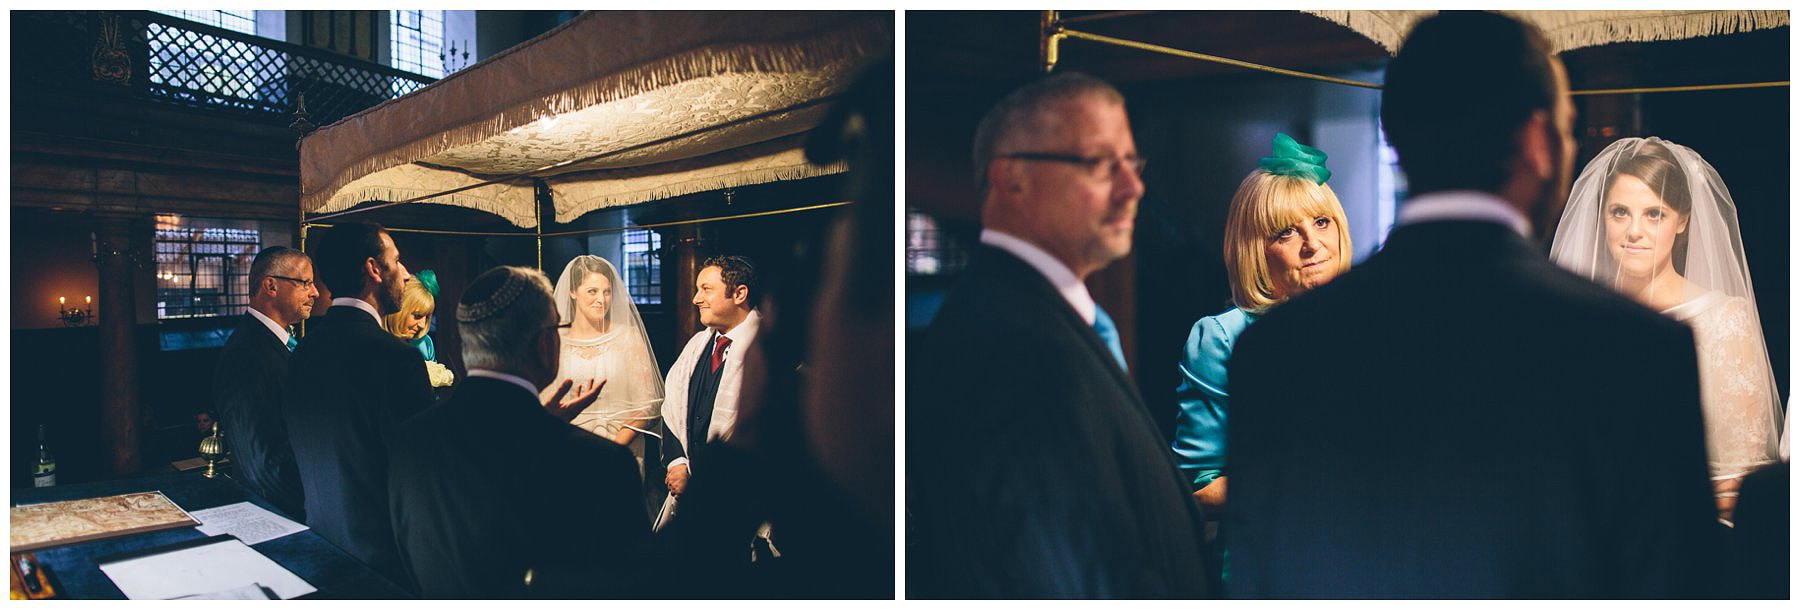 Bevis_Marks_Synagogue_Wedding_Photography_0049